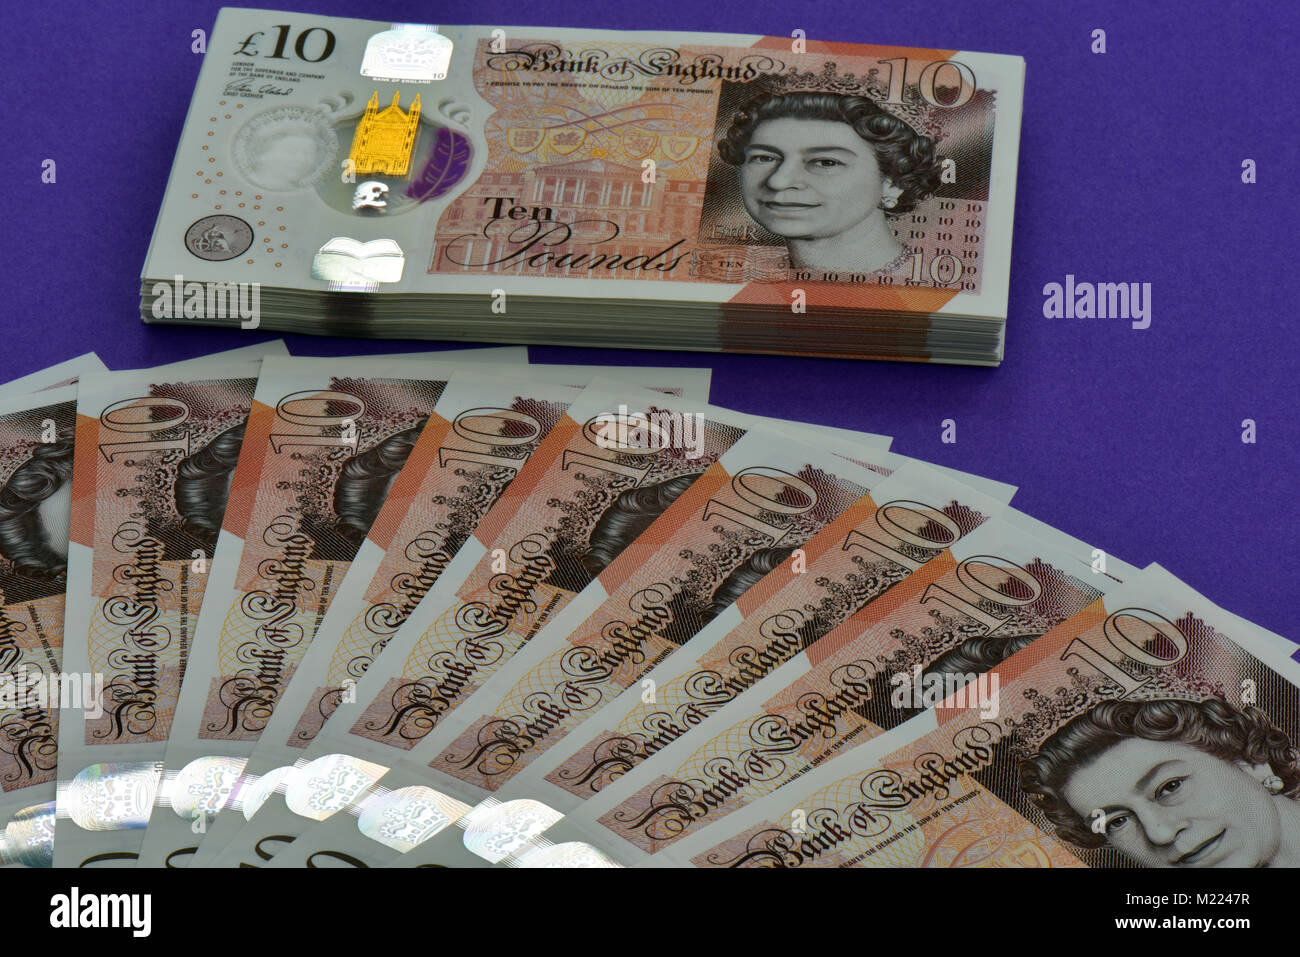 a pile or wad of ten pound notes next to a fan of notes laid onto a flat lilcac coloured  surface. Money in notes - Stock Image